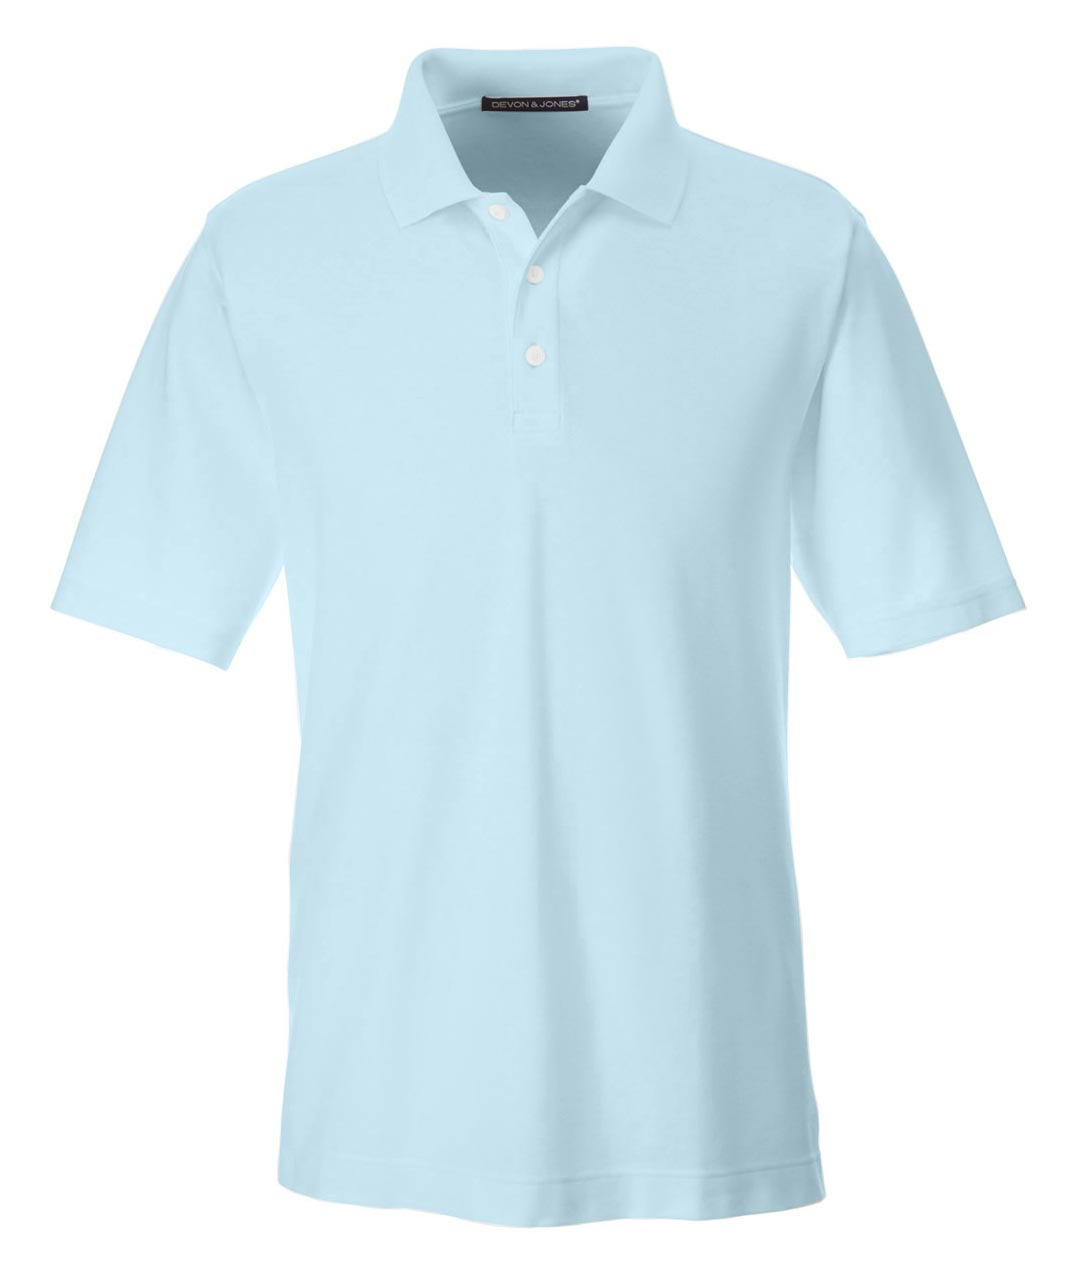 Mens DryTec20™ Performance Polo